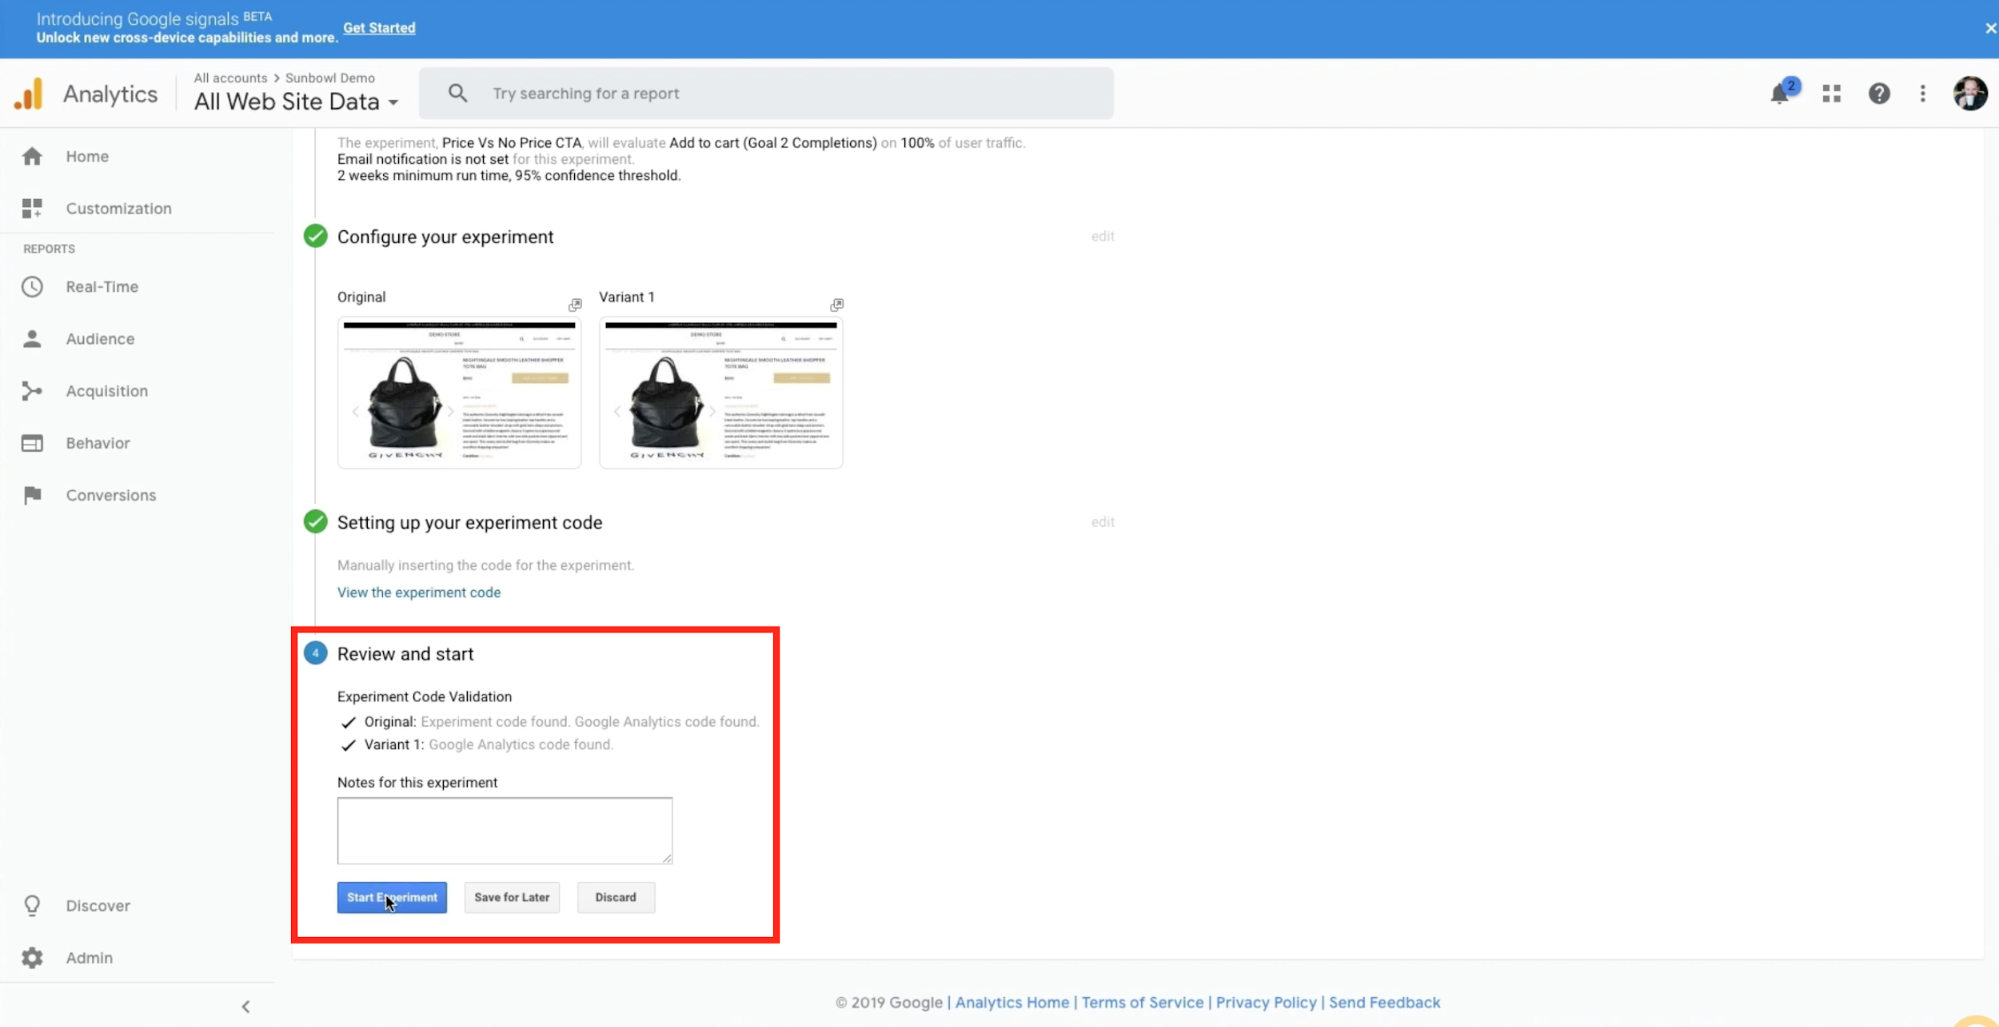 Google analytics is verifying it sees the code and that it is working on the merchants Shopify store